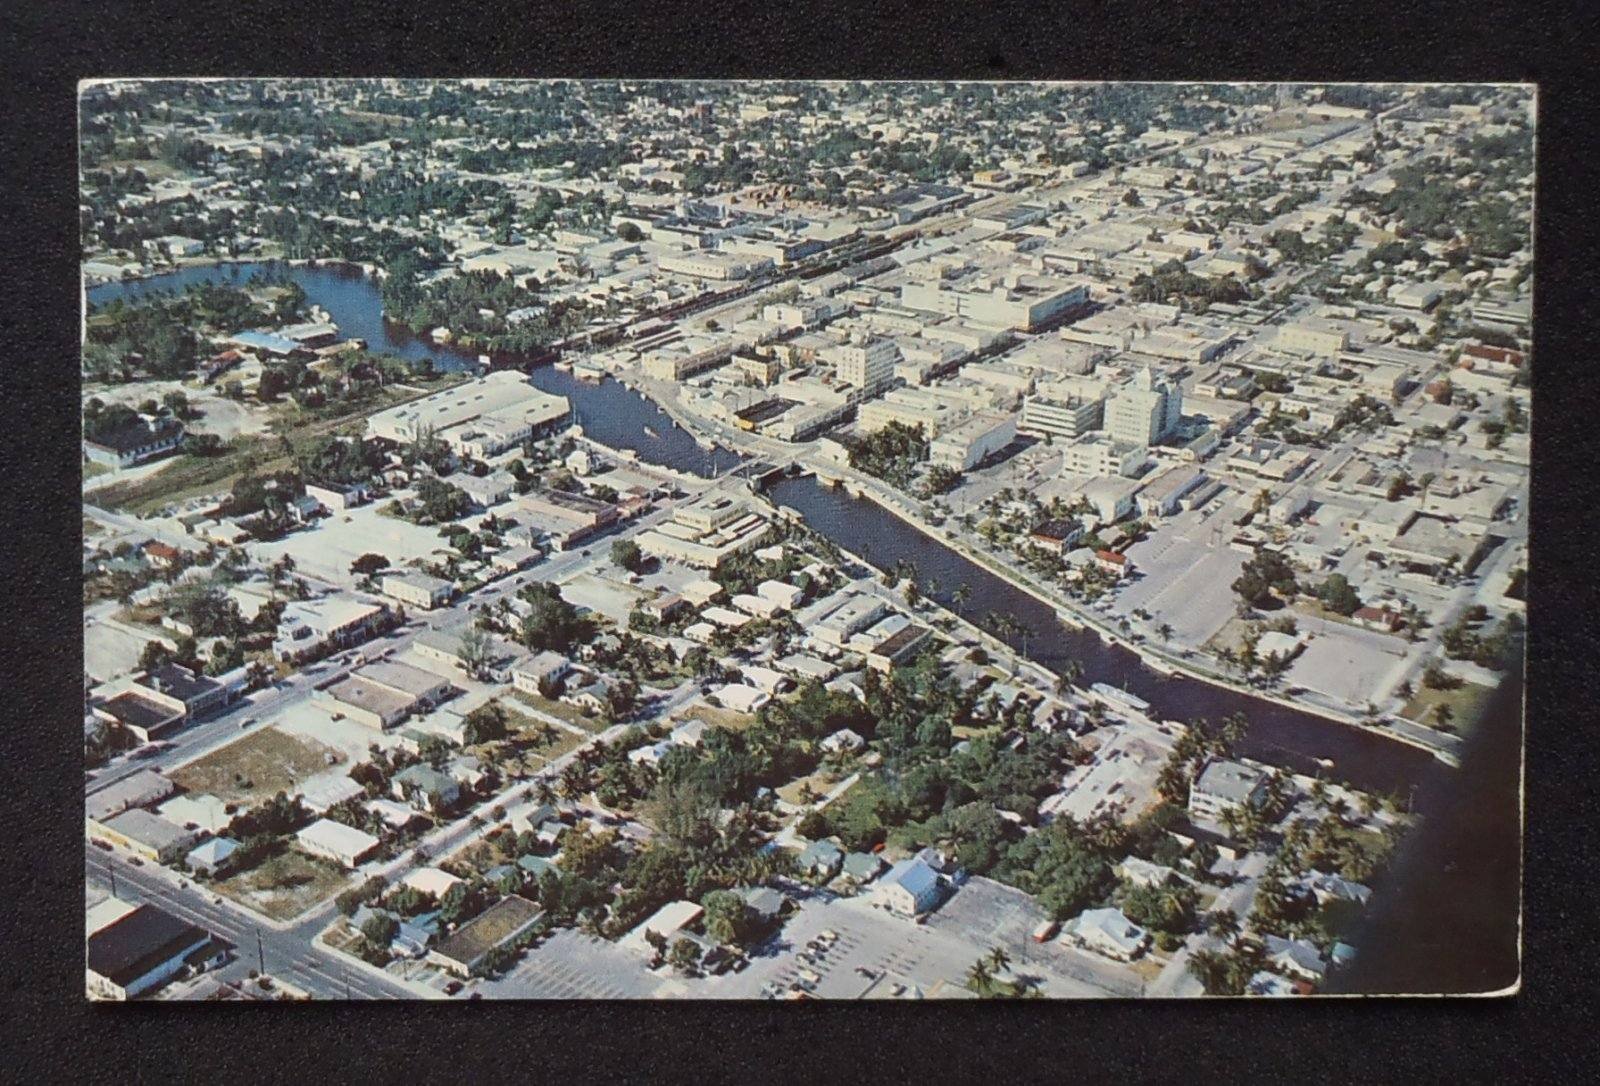 Details about 1956 aerial view b amadeus rubel fort lauderdale fl